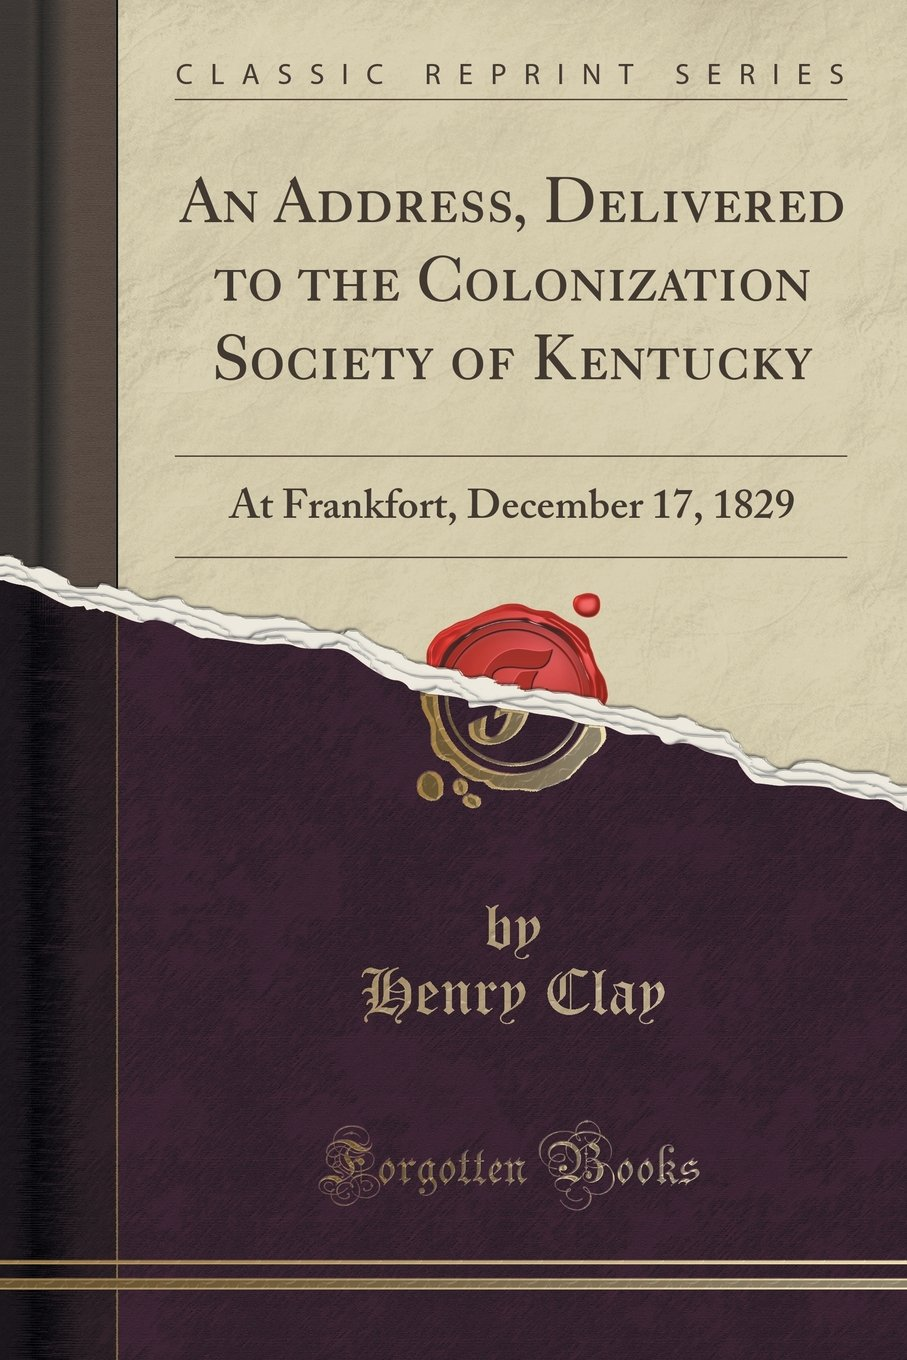 An Address, Delivered to the Colonization Society of Kentucky: At Frankfort, December 17, 1829 (Classic Reprint) PDF